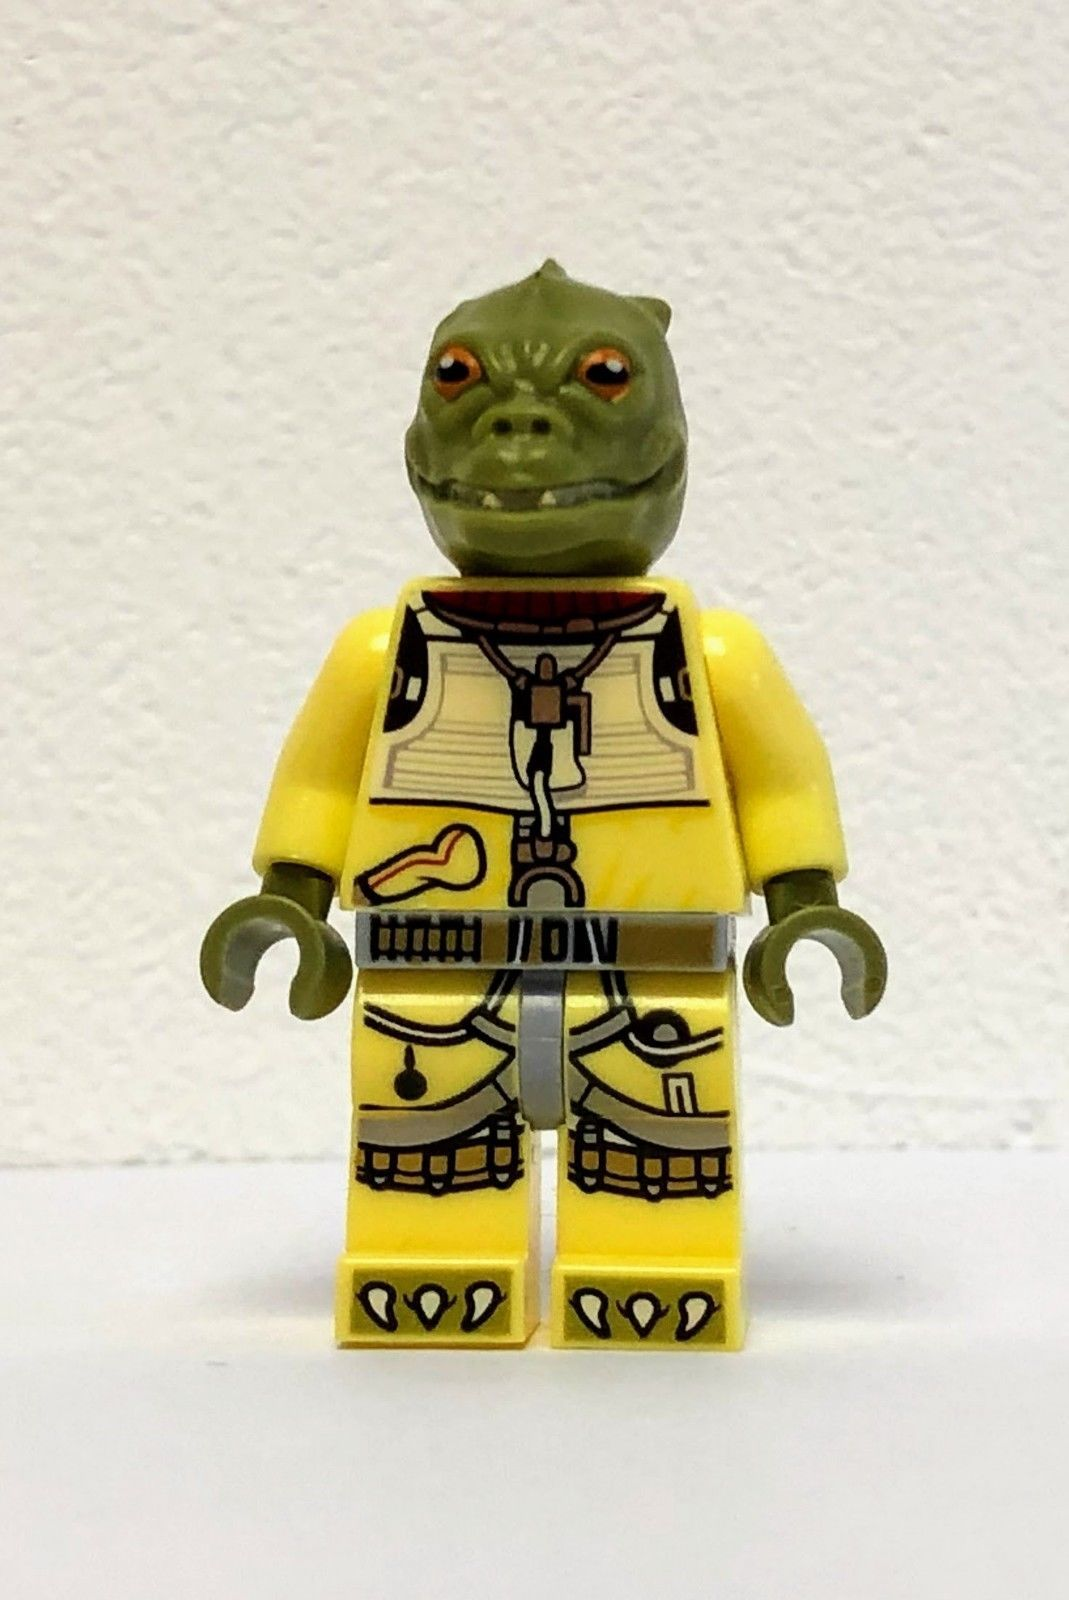 *NEW* from set 75167 Lego Star Wars Bossk